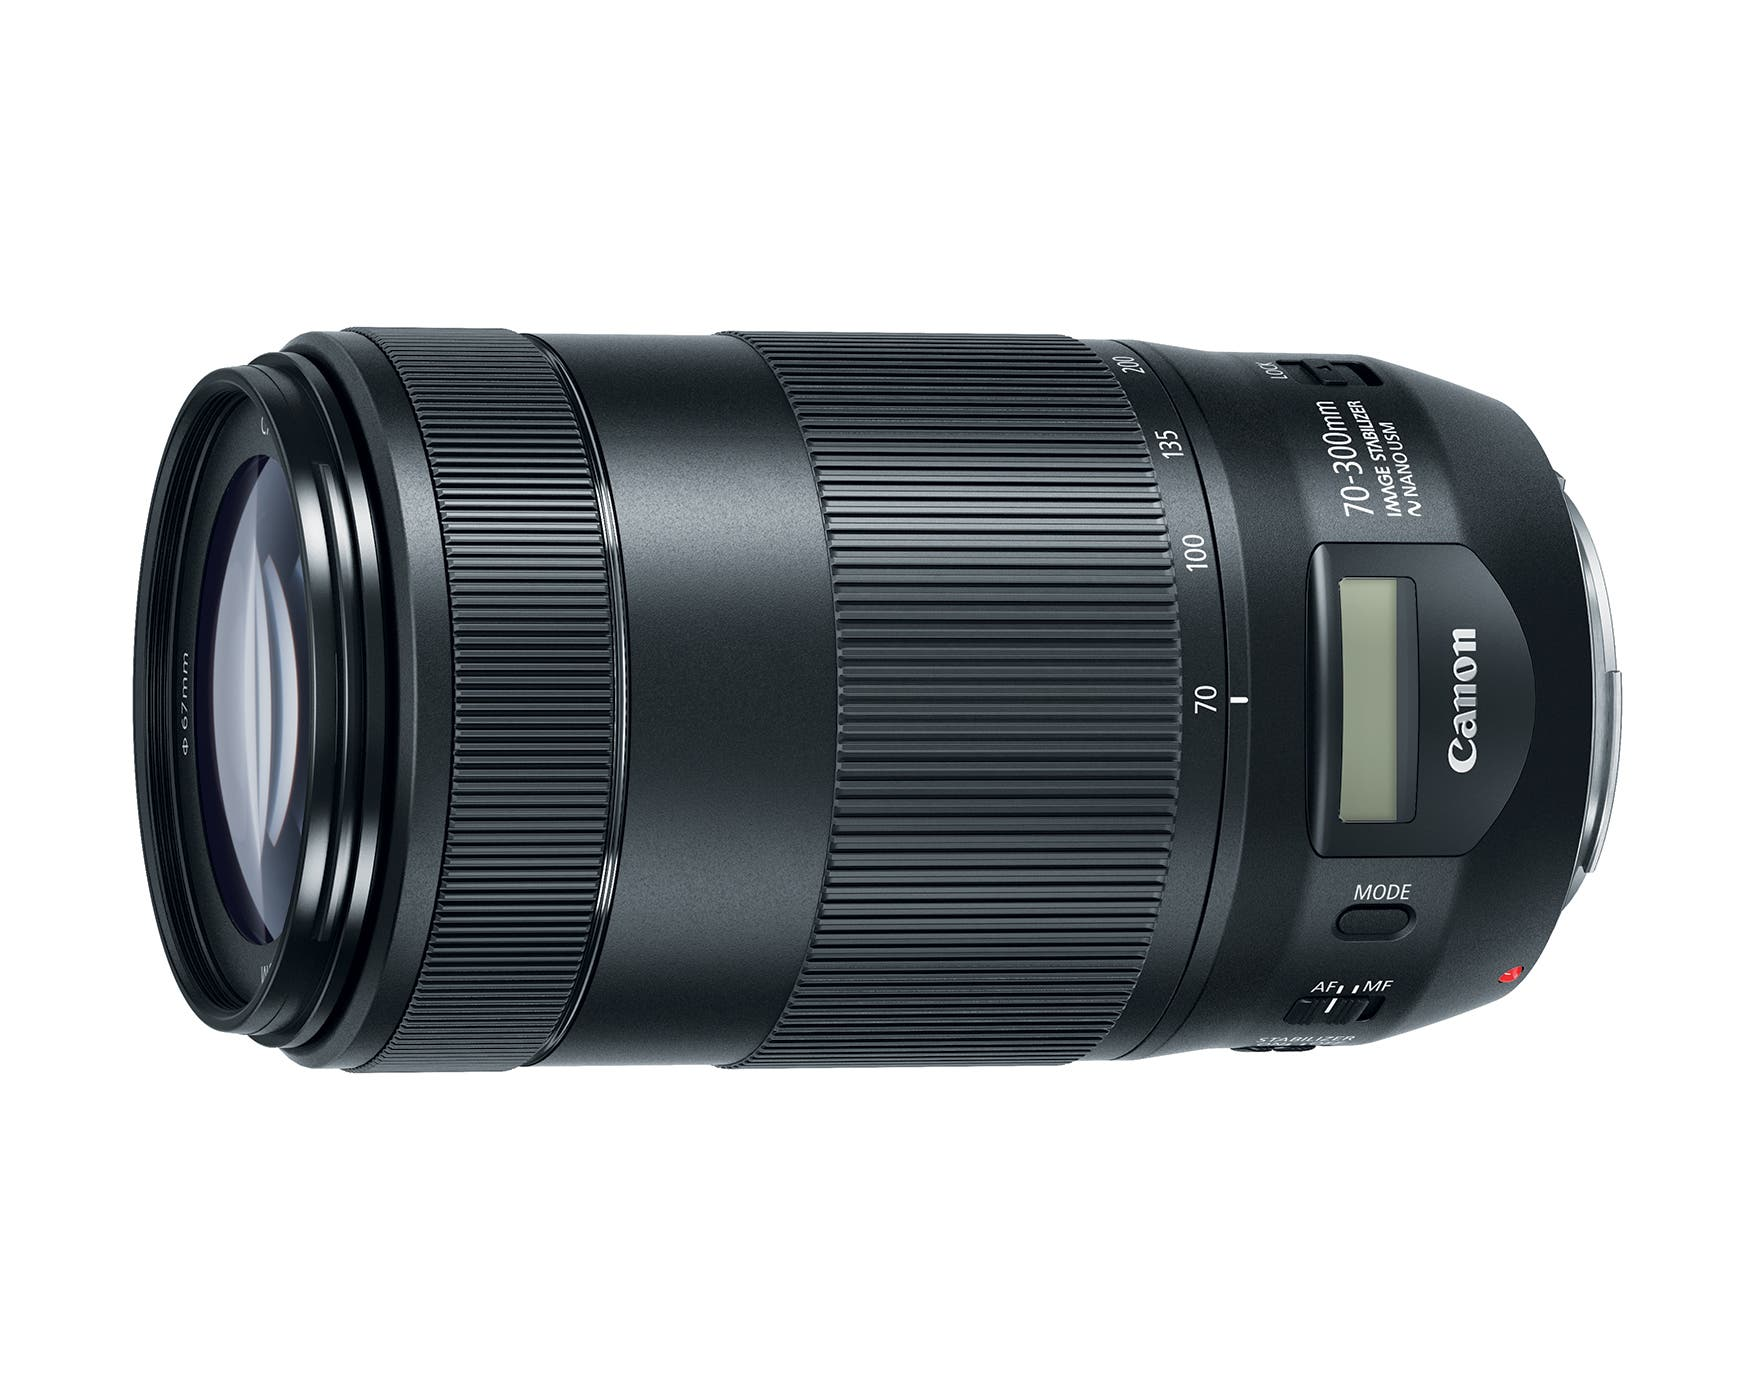 New Canon 70-300mm F/4.5-5.6 IS II USM Has An LCD Screen